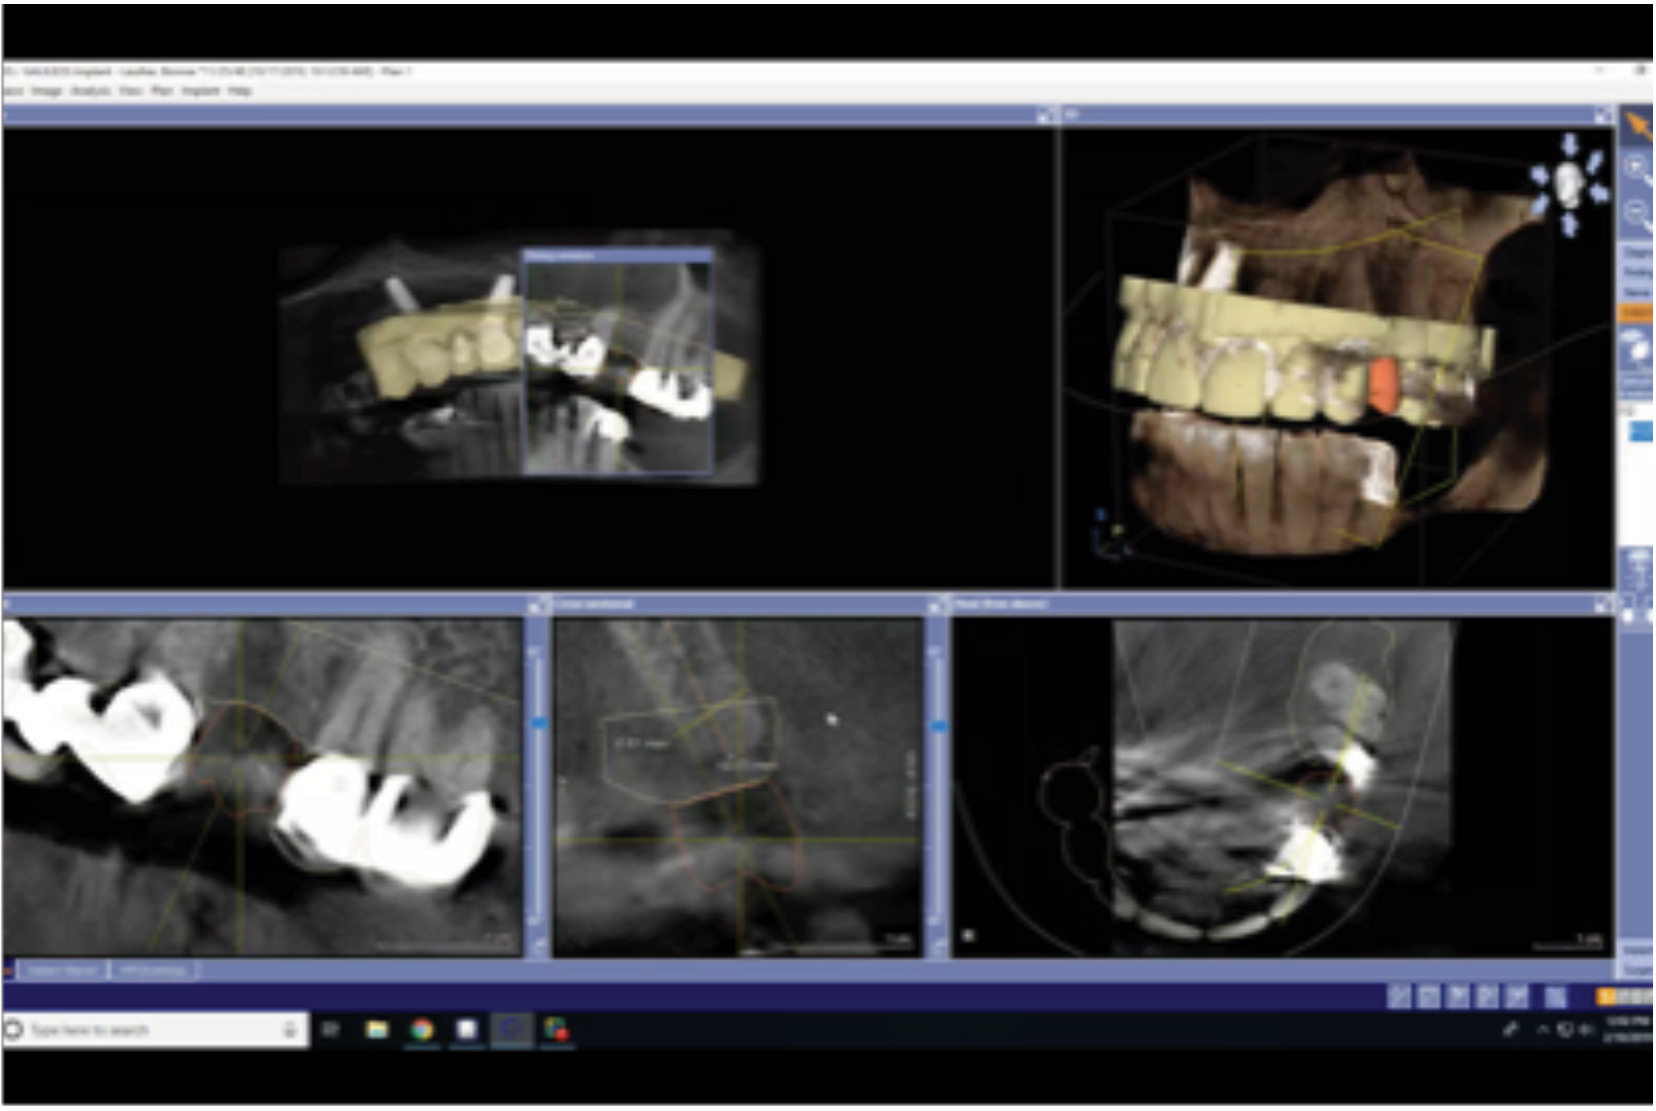 Completed stitch of CAD/CAM data to CBCT.